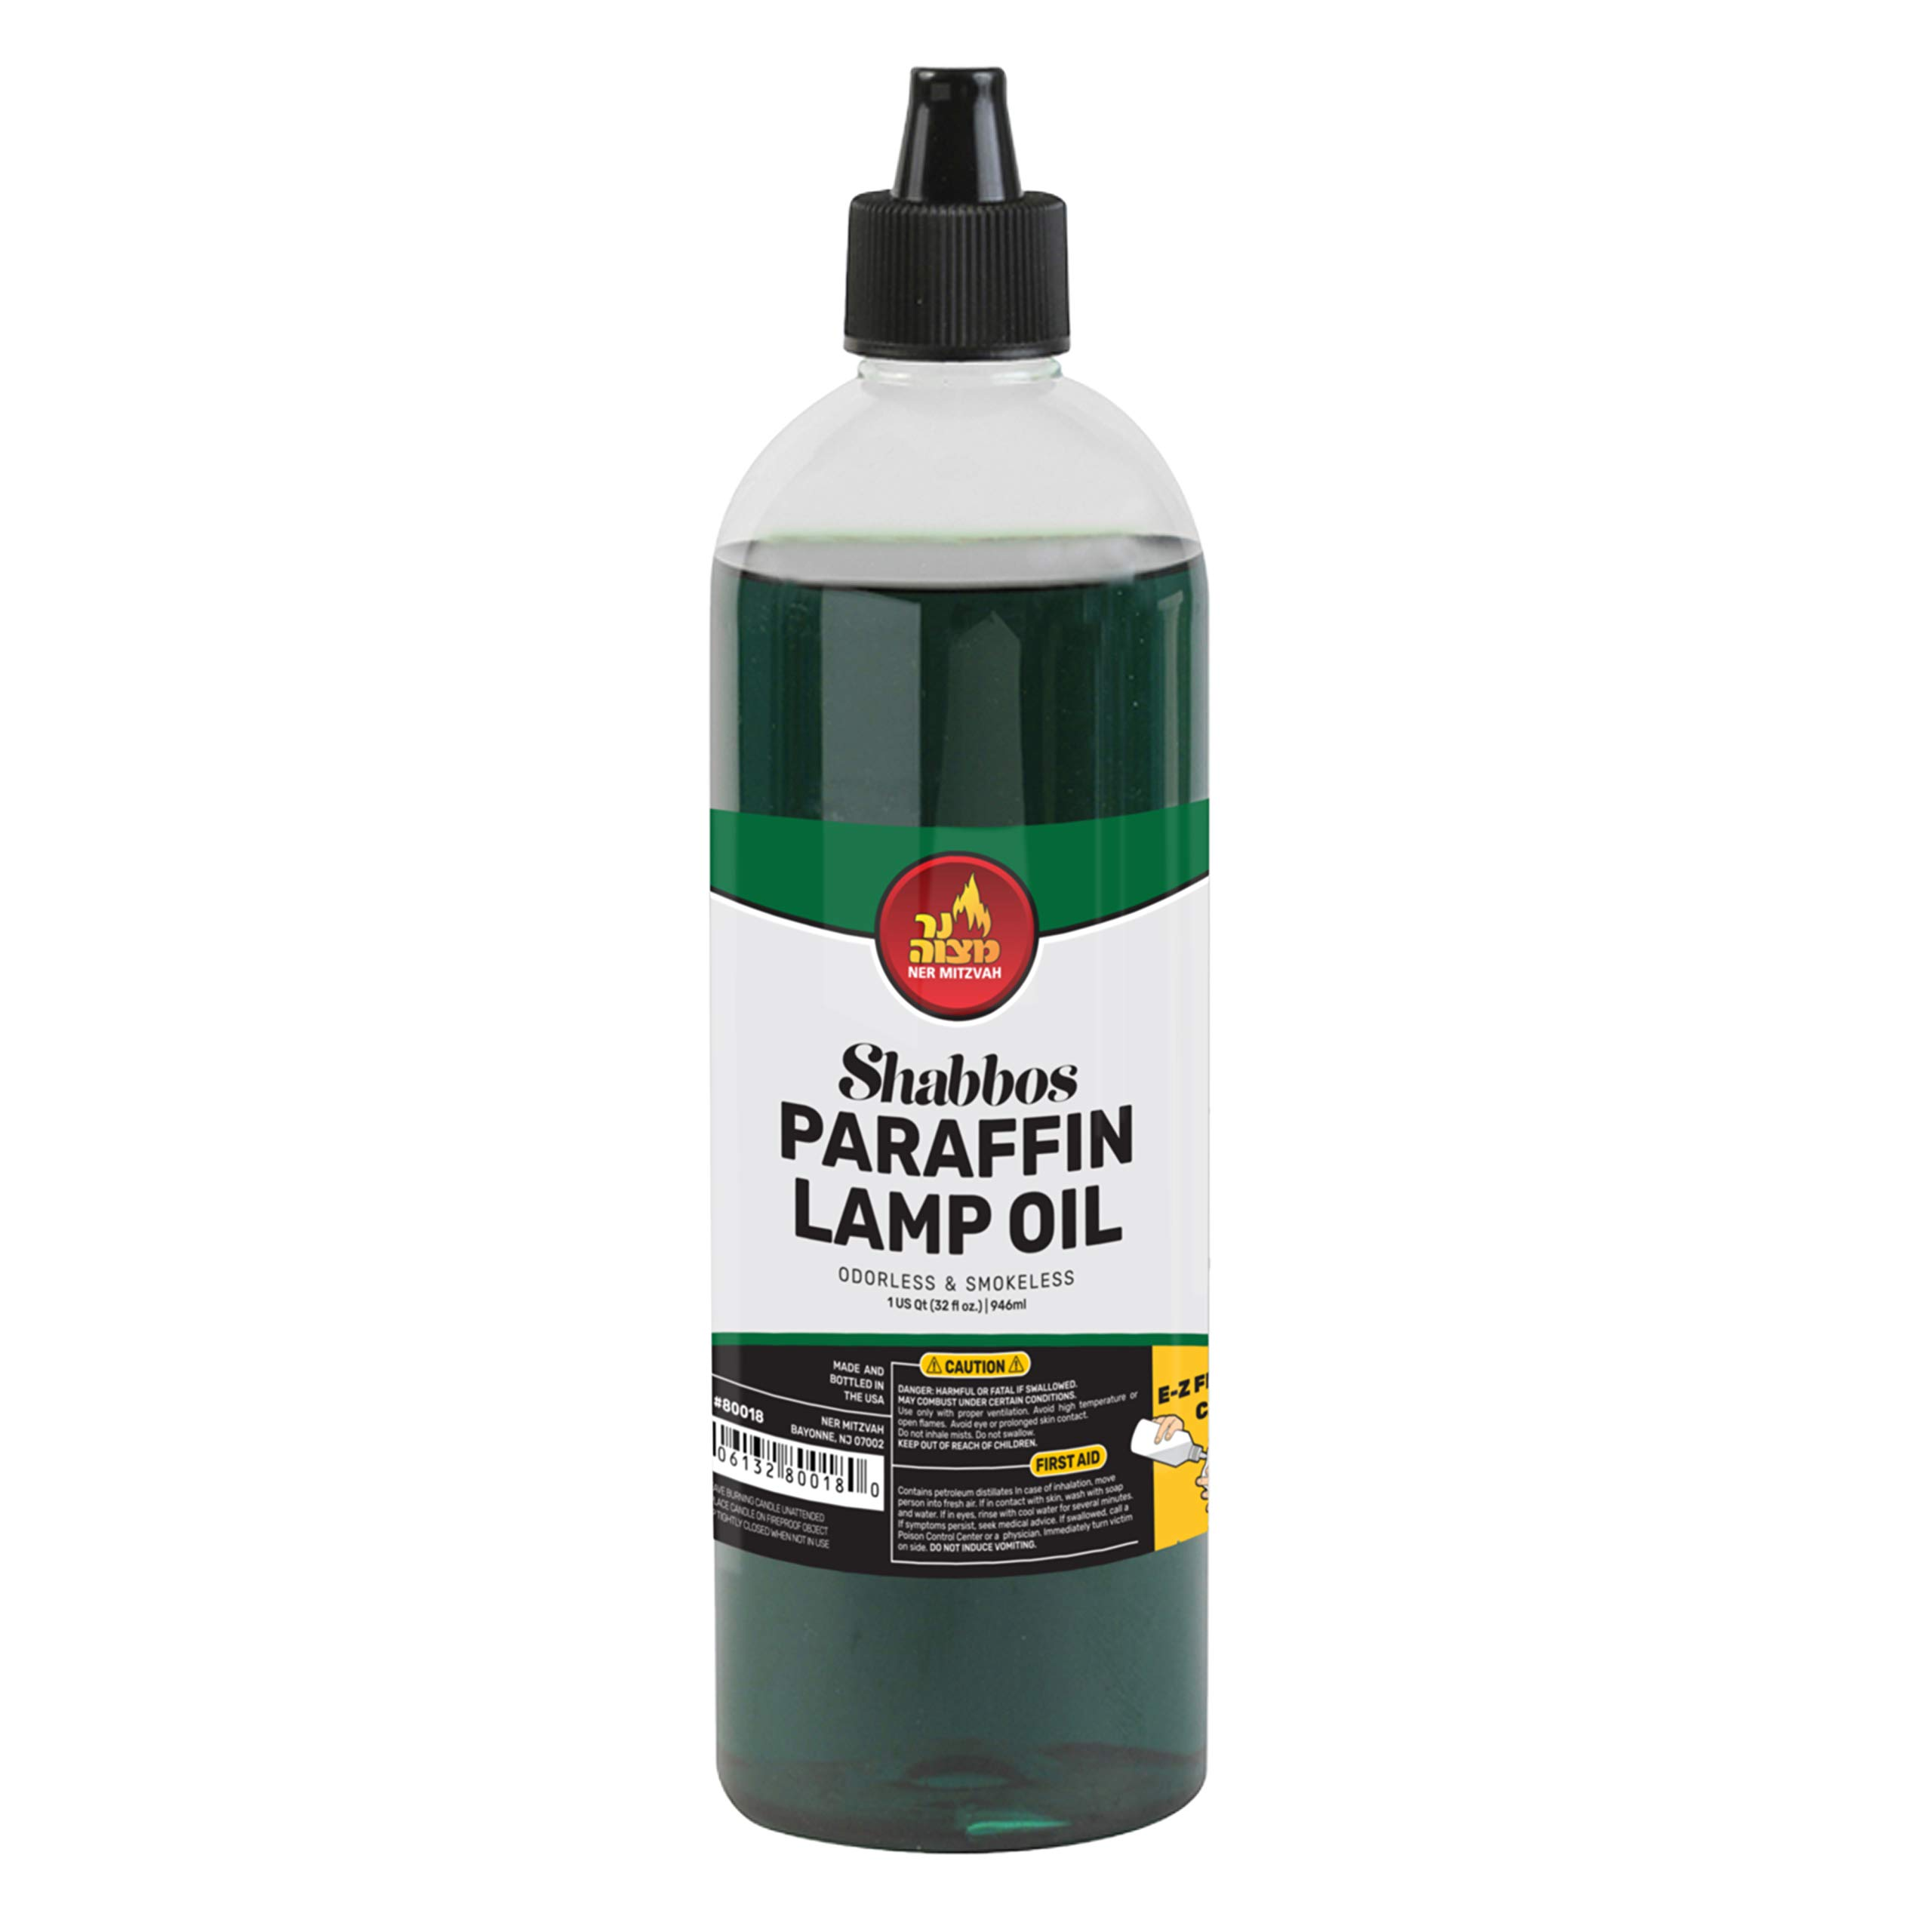 Paraffin Lamp Oil - Green Smokeless, Odorless, Clean Burning Fuel for Indoor and Outdoor Use with E-Z Fill Cap and Pouring Spout - 32oz - by Ner Mitzvah by Ner Mitzvah